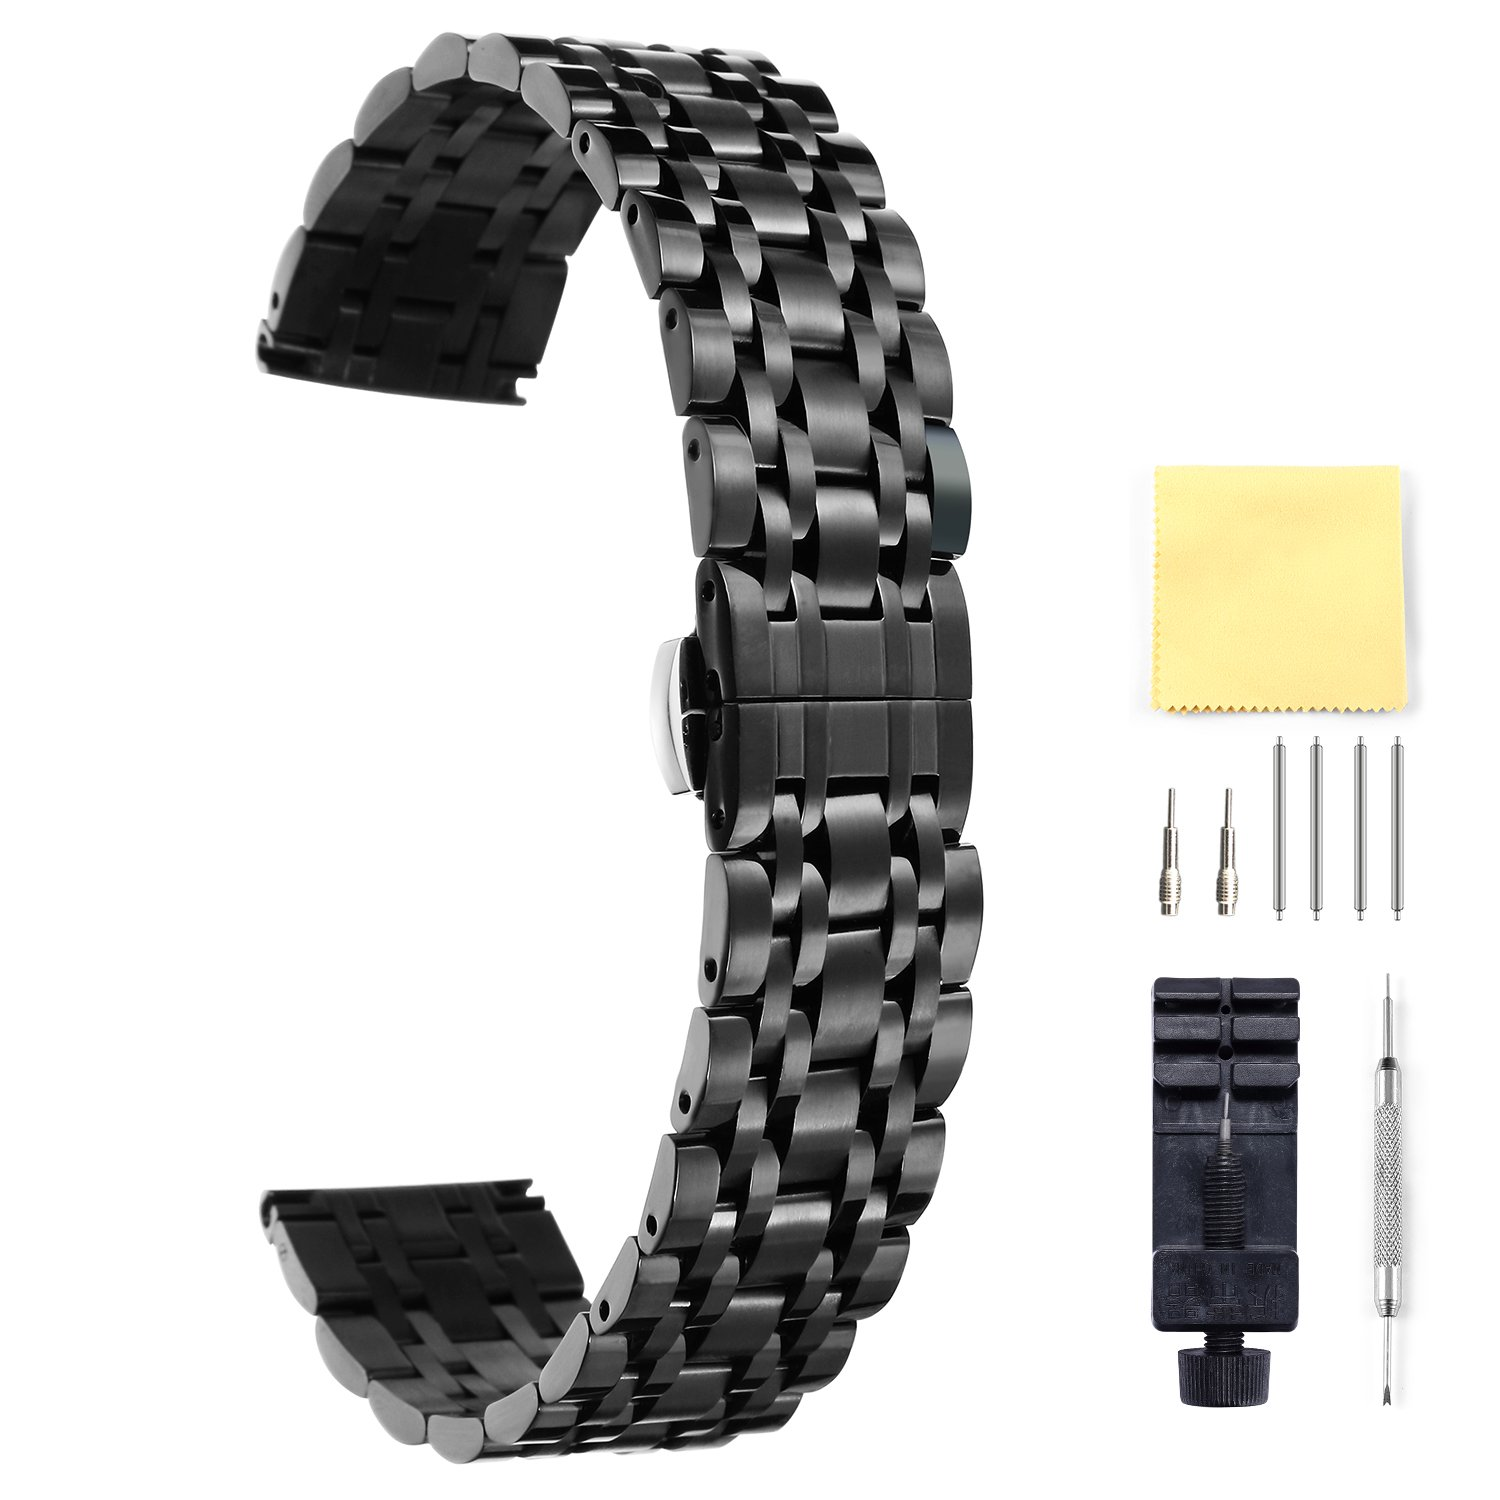 BINLUN Stainless Steel Watch Band 6 Color(Gold, Silver, Black, Rose Gold, Gold Tone, Rose Gold Tone) 17 Size (10mm - 26mm)